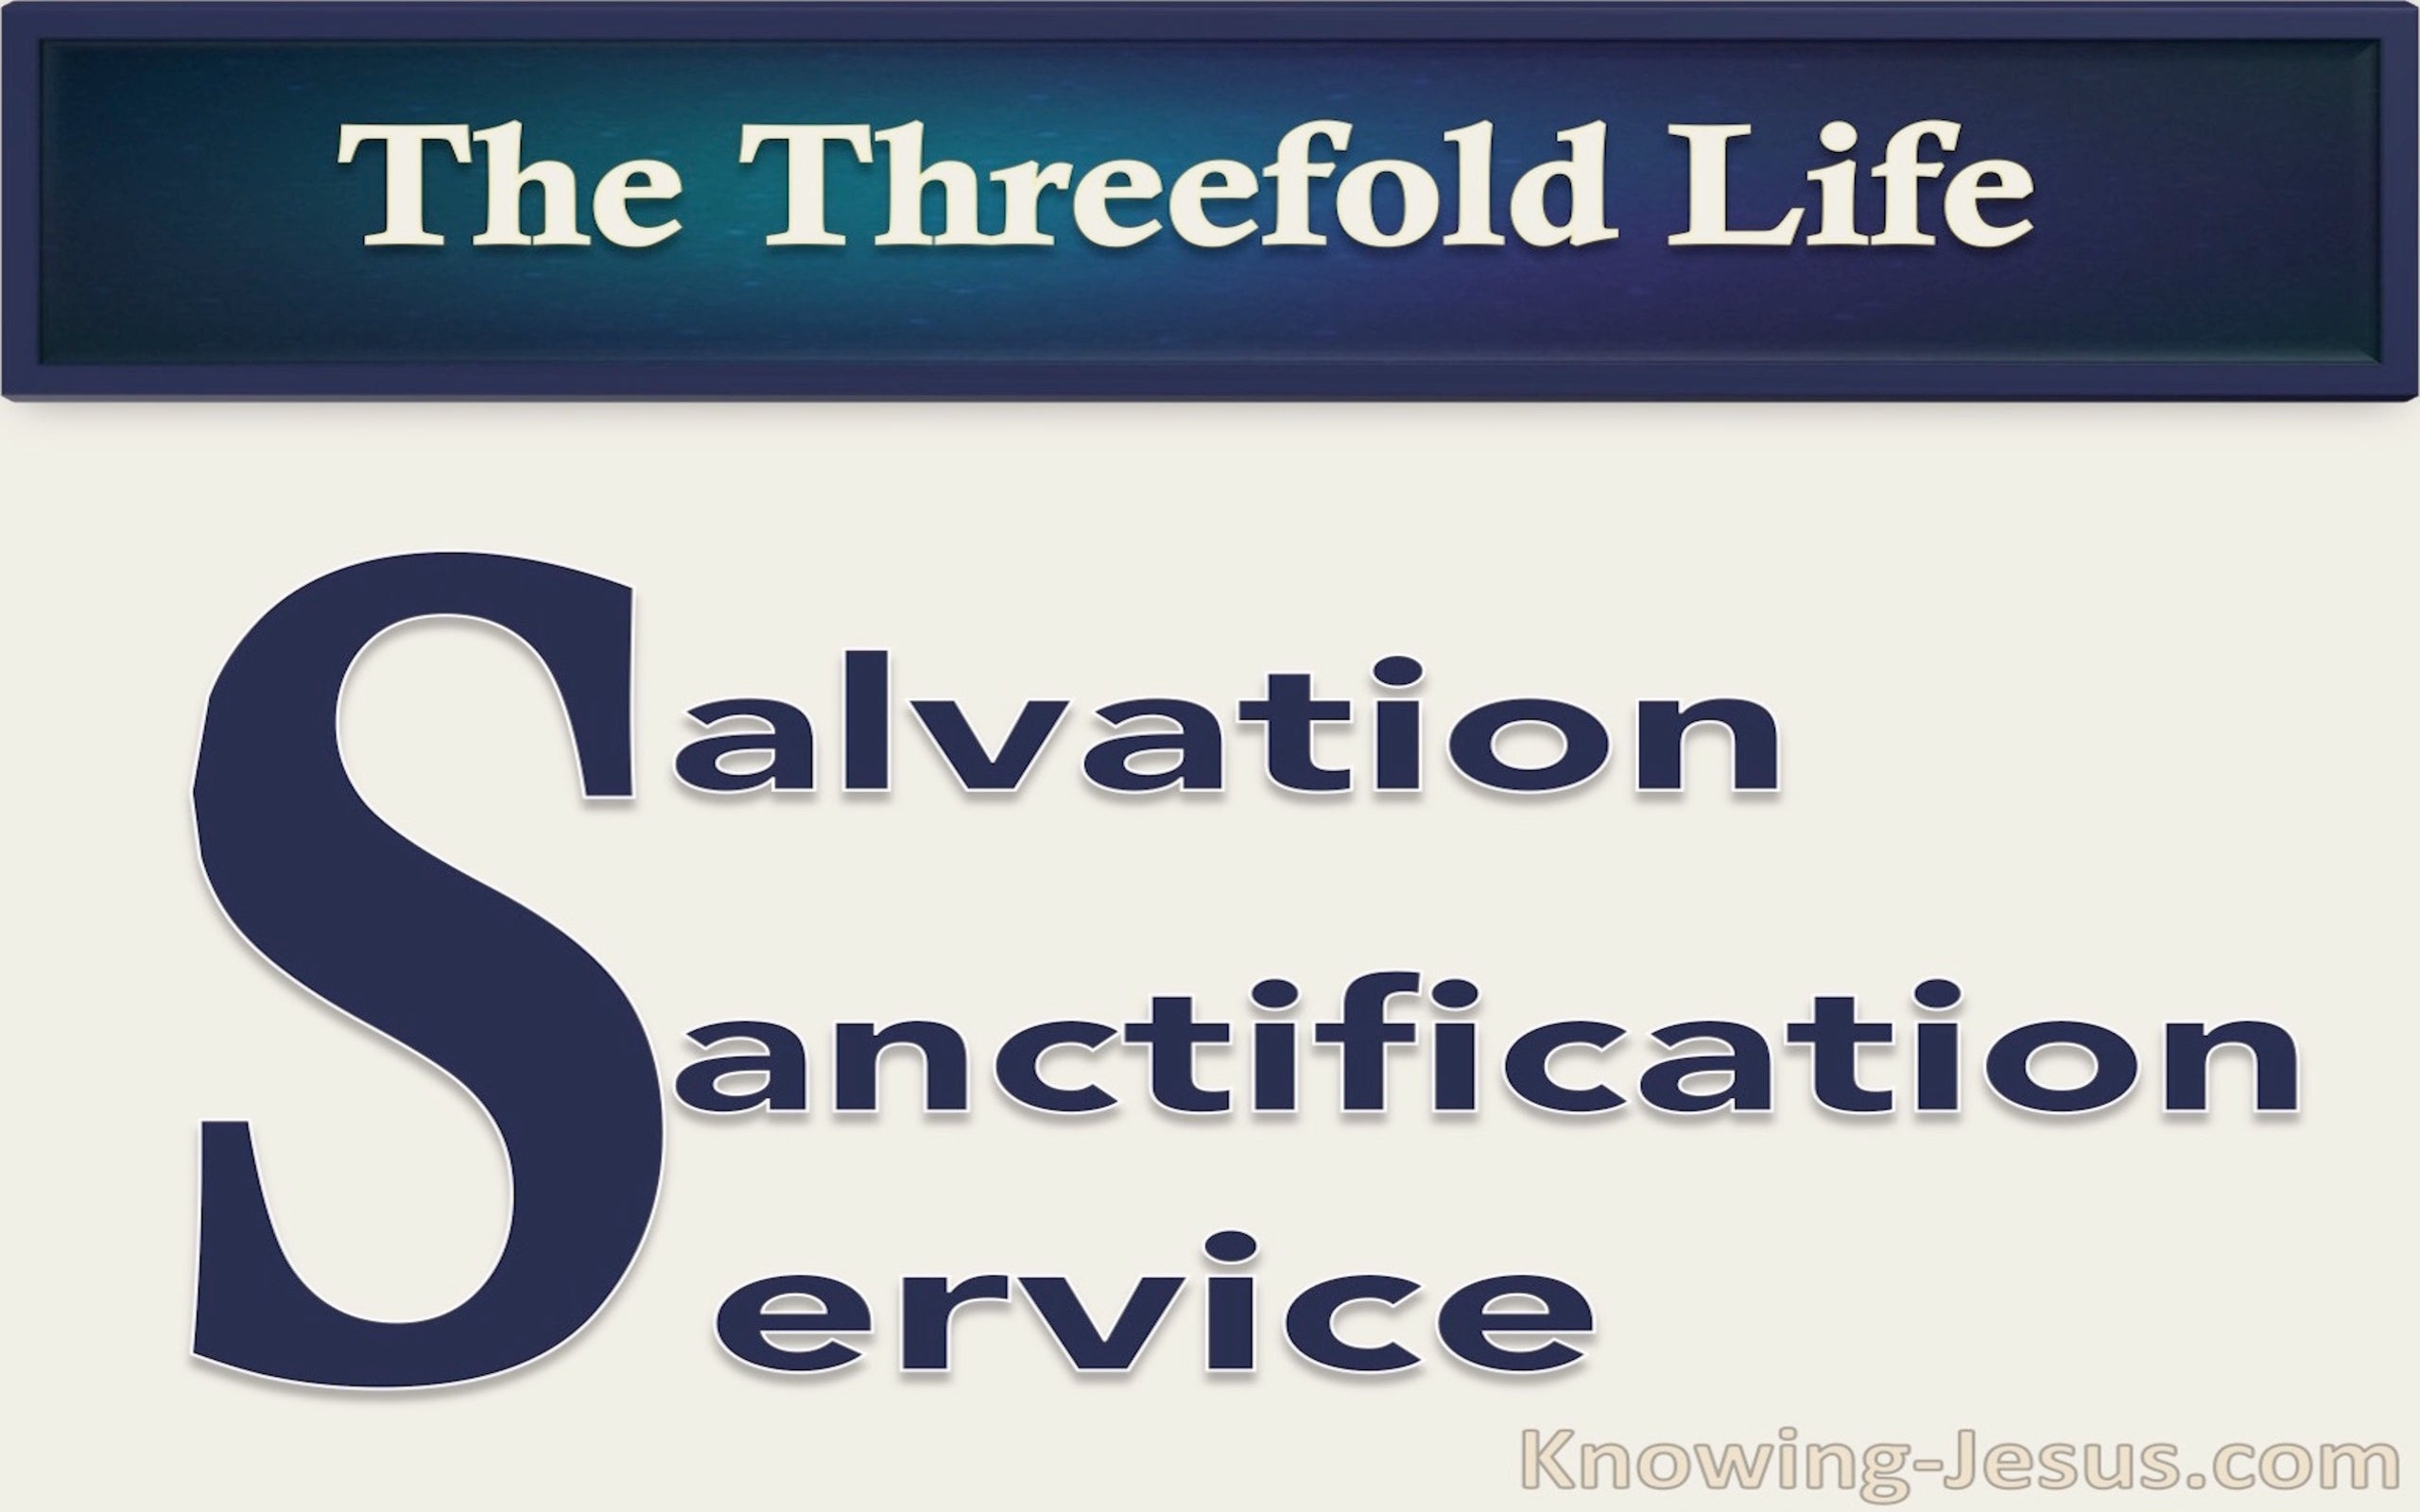 The Threefold Life (devotional) (navy)